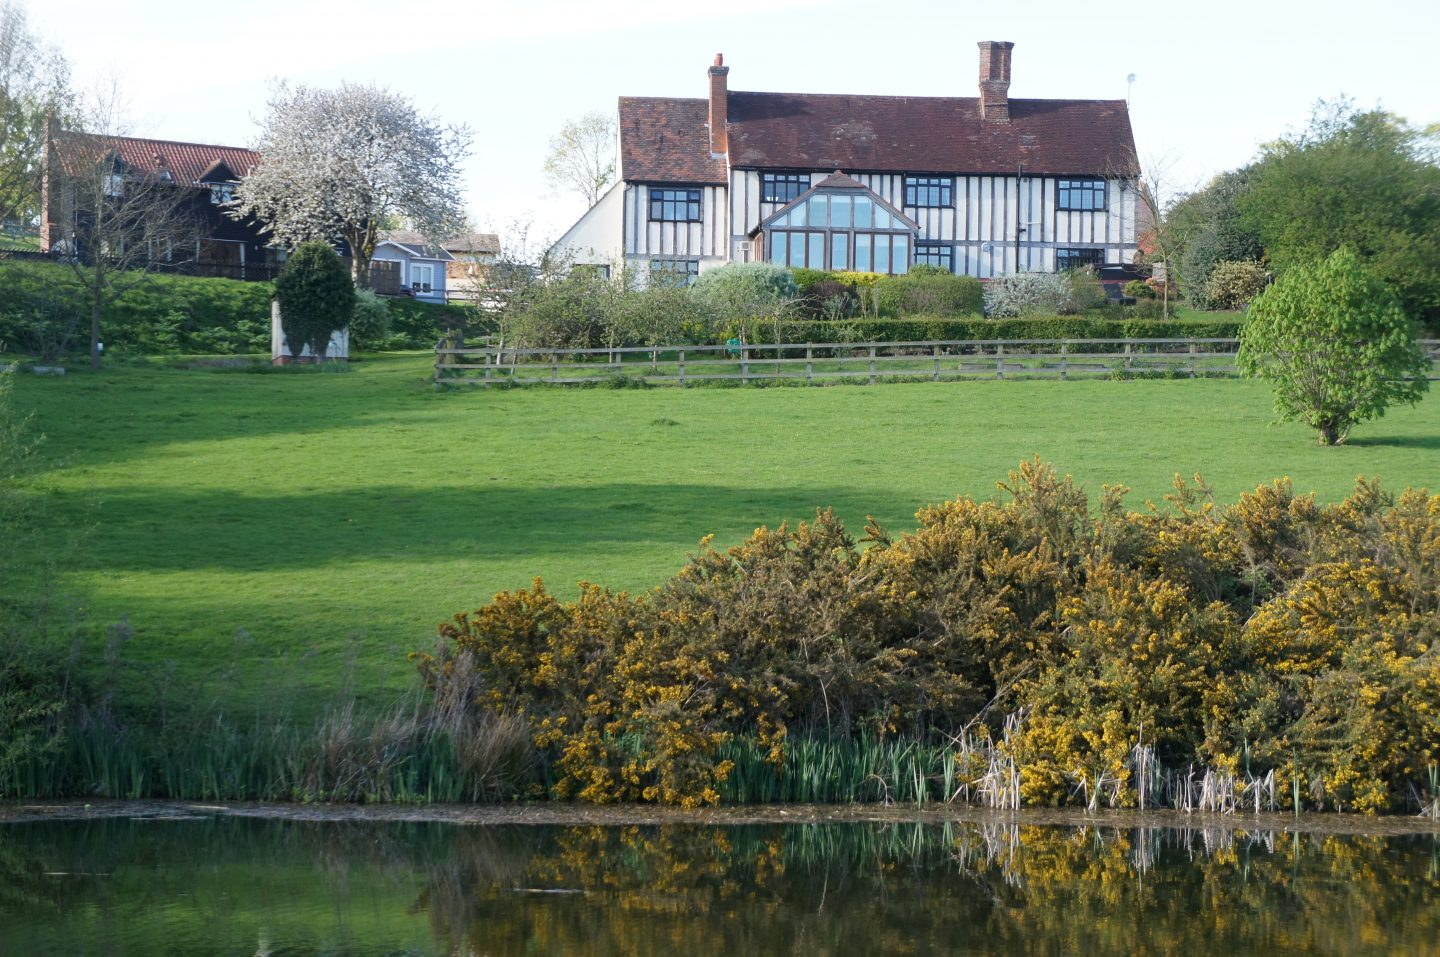 View from the back of the farm